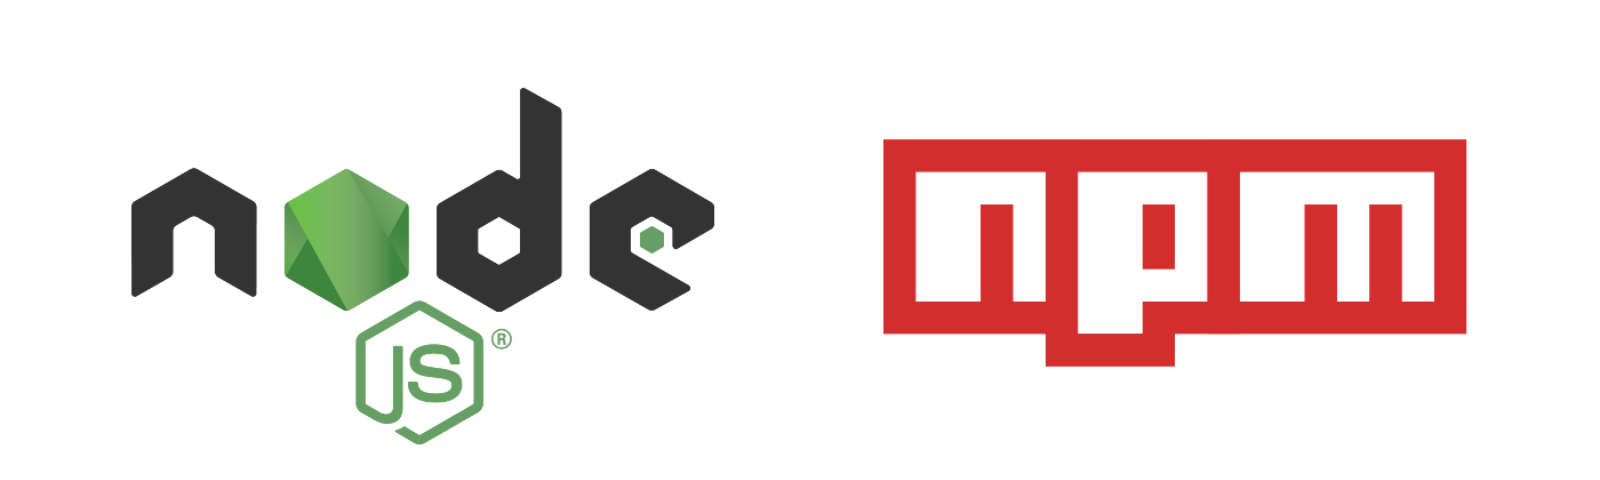 4 Solutions To Run Multiple Node js or NPM Commands Simultaneously